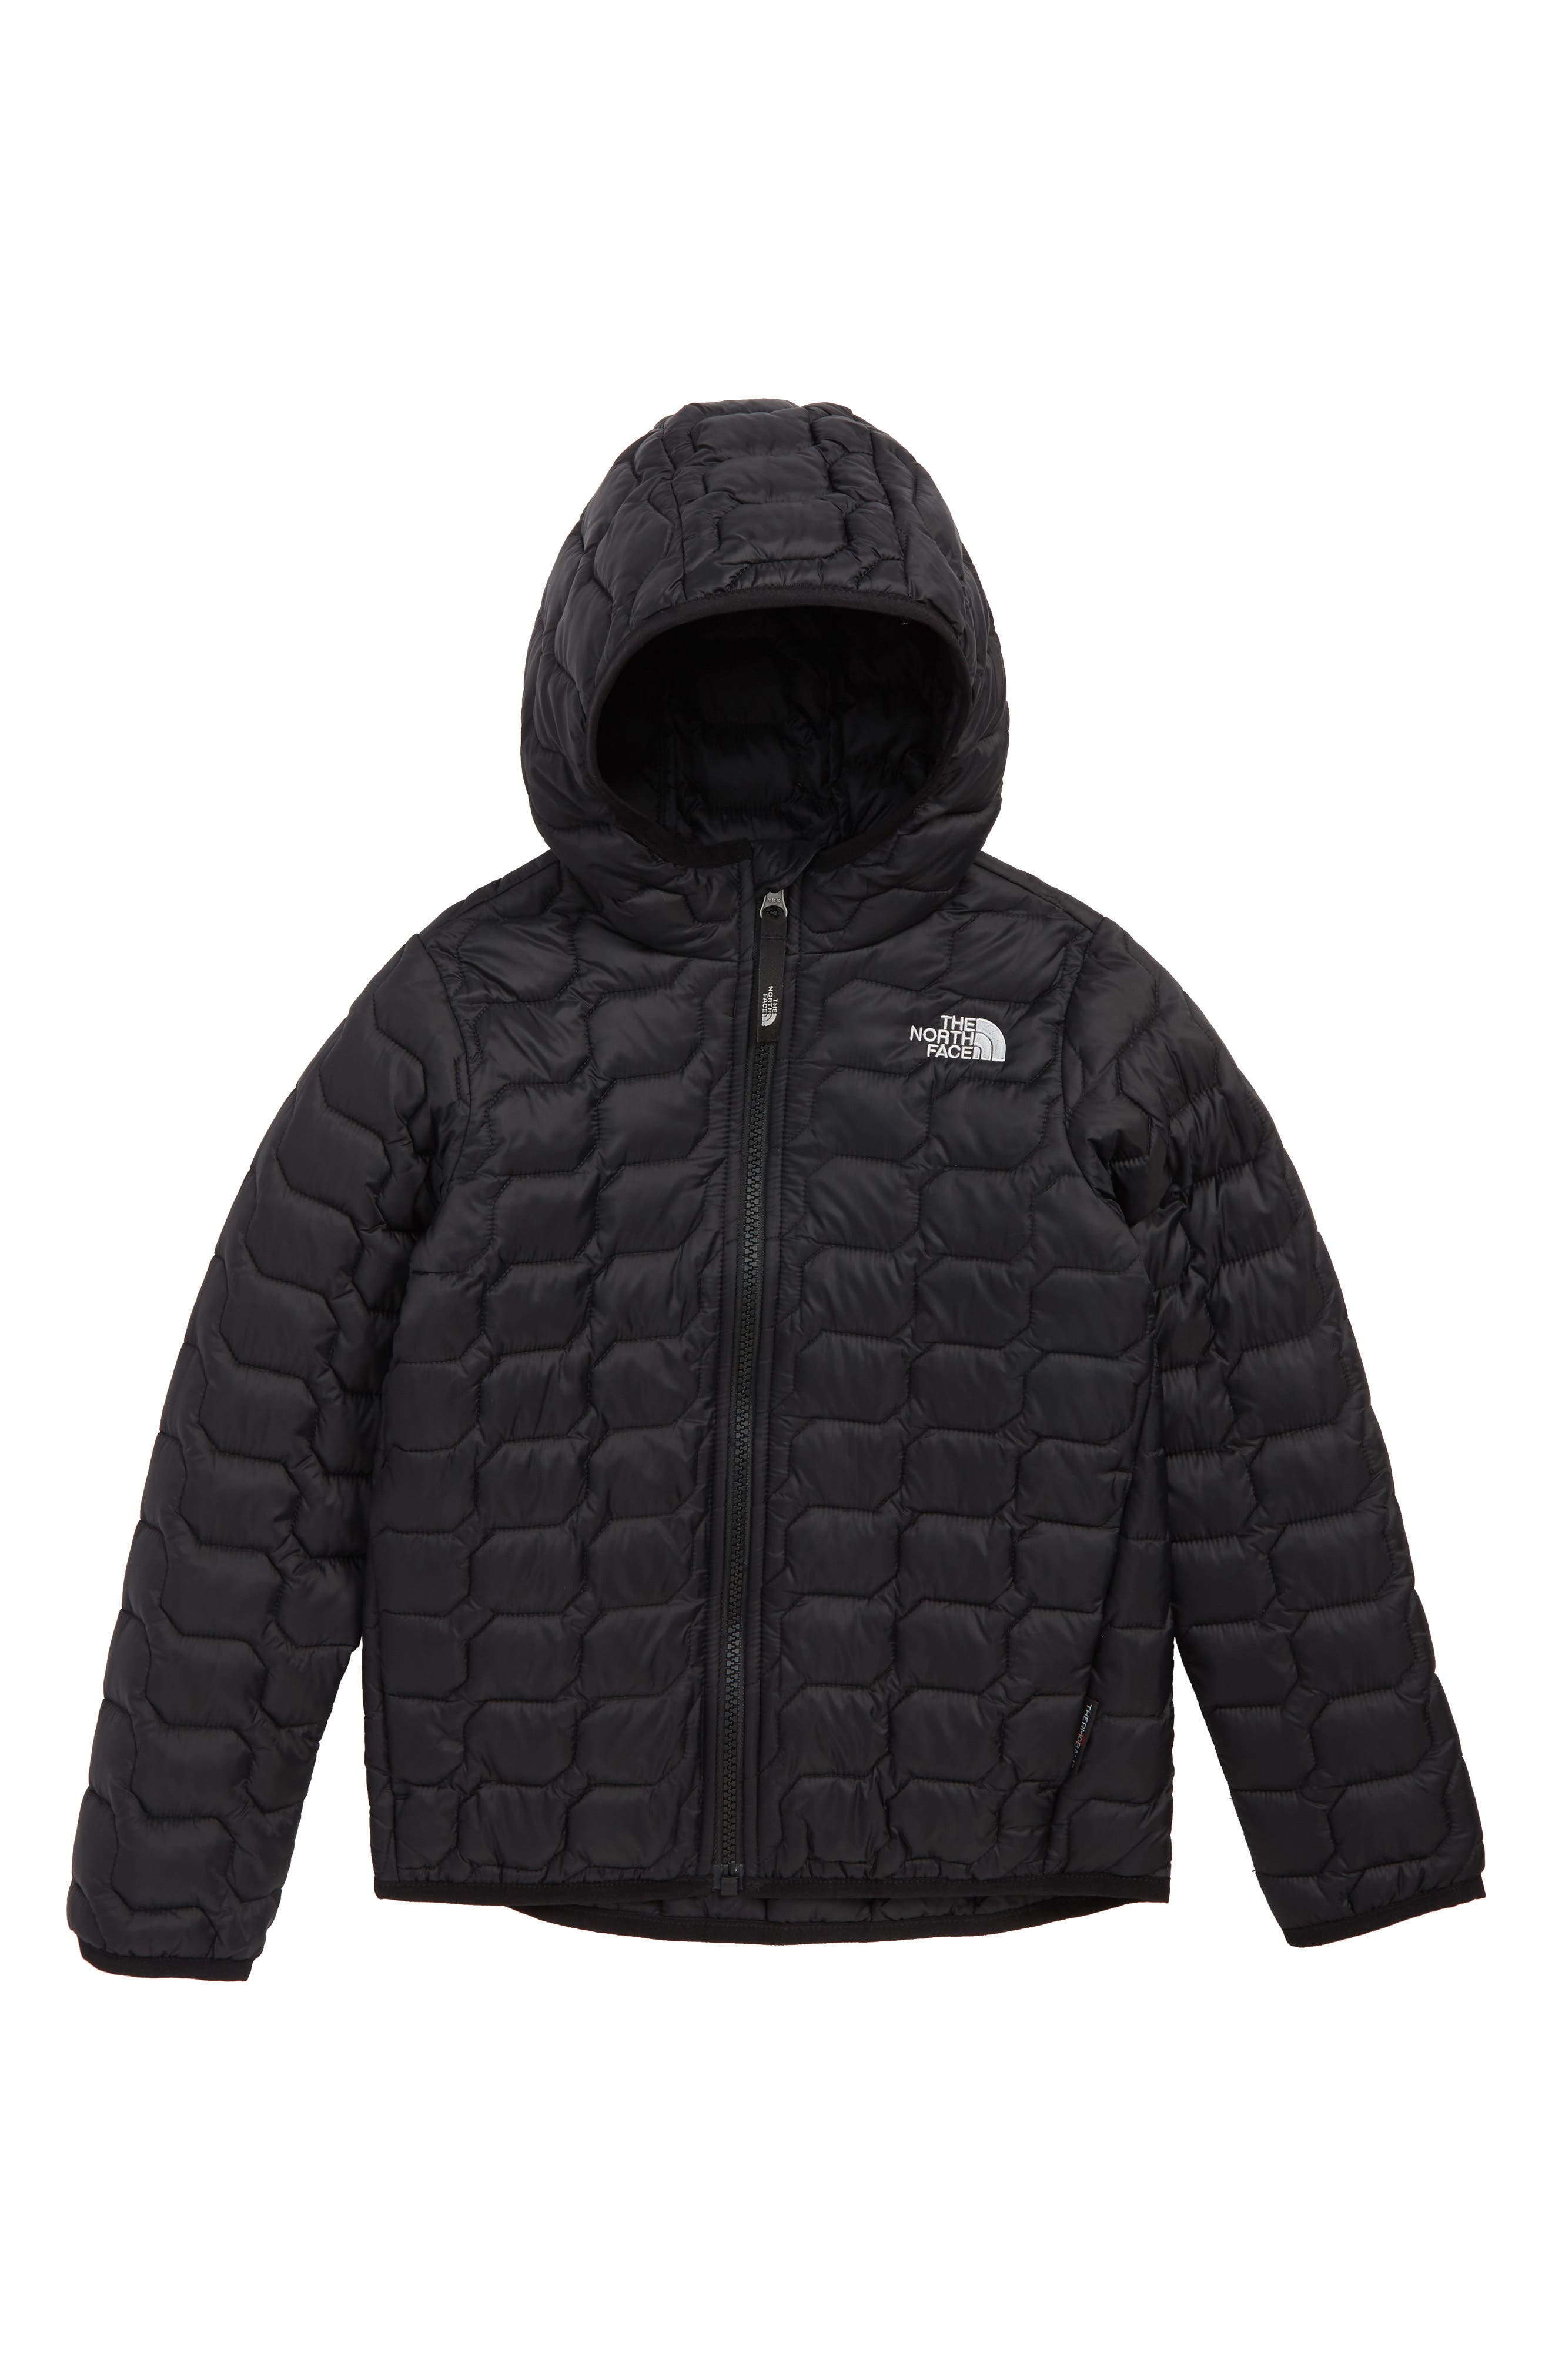 Boys The North Face Thermoball(TM) Hooded Jacket Size 6  Black